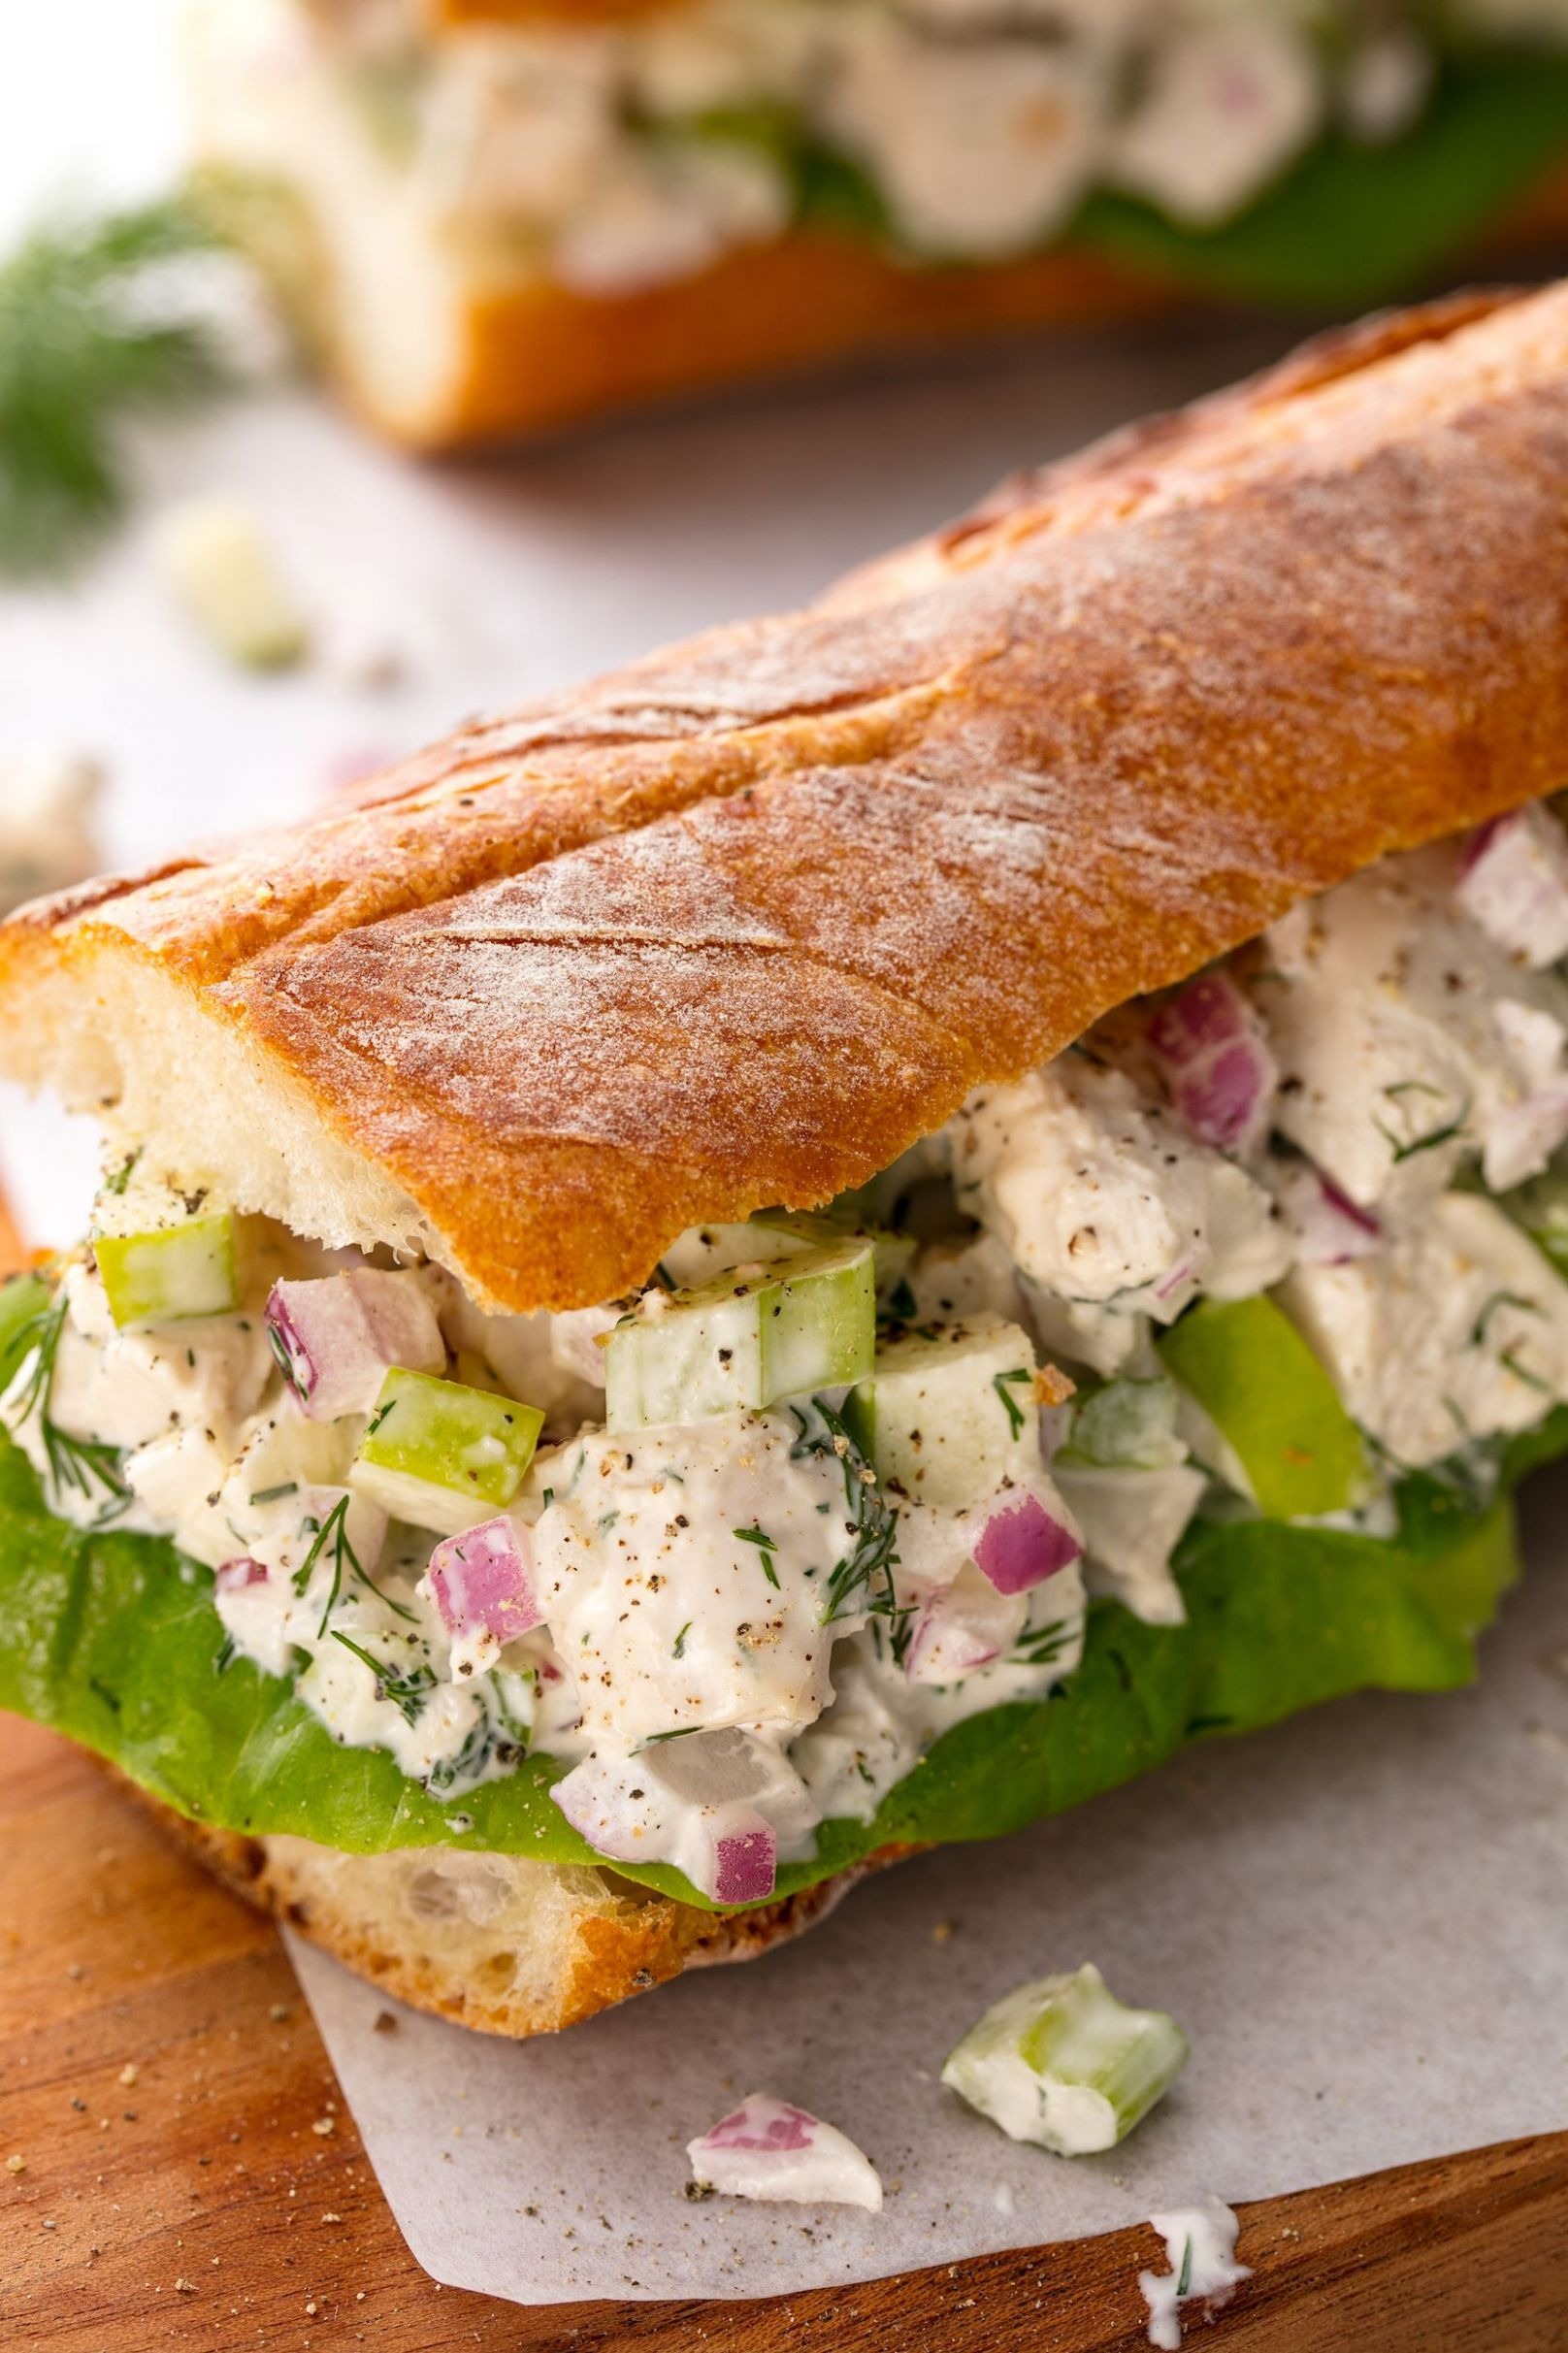 12+ Easy Sandwich Recipes for Lunch - Easy Lunch Sandwiches - Sandwich Recipes To Take To Work